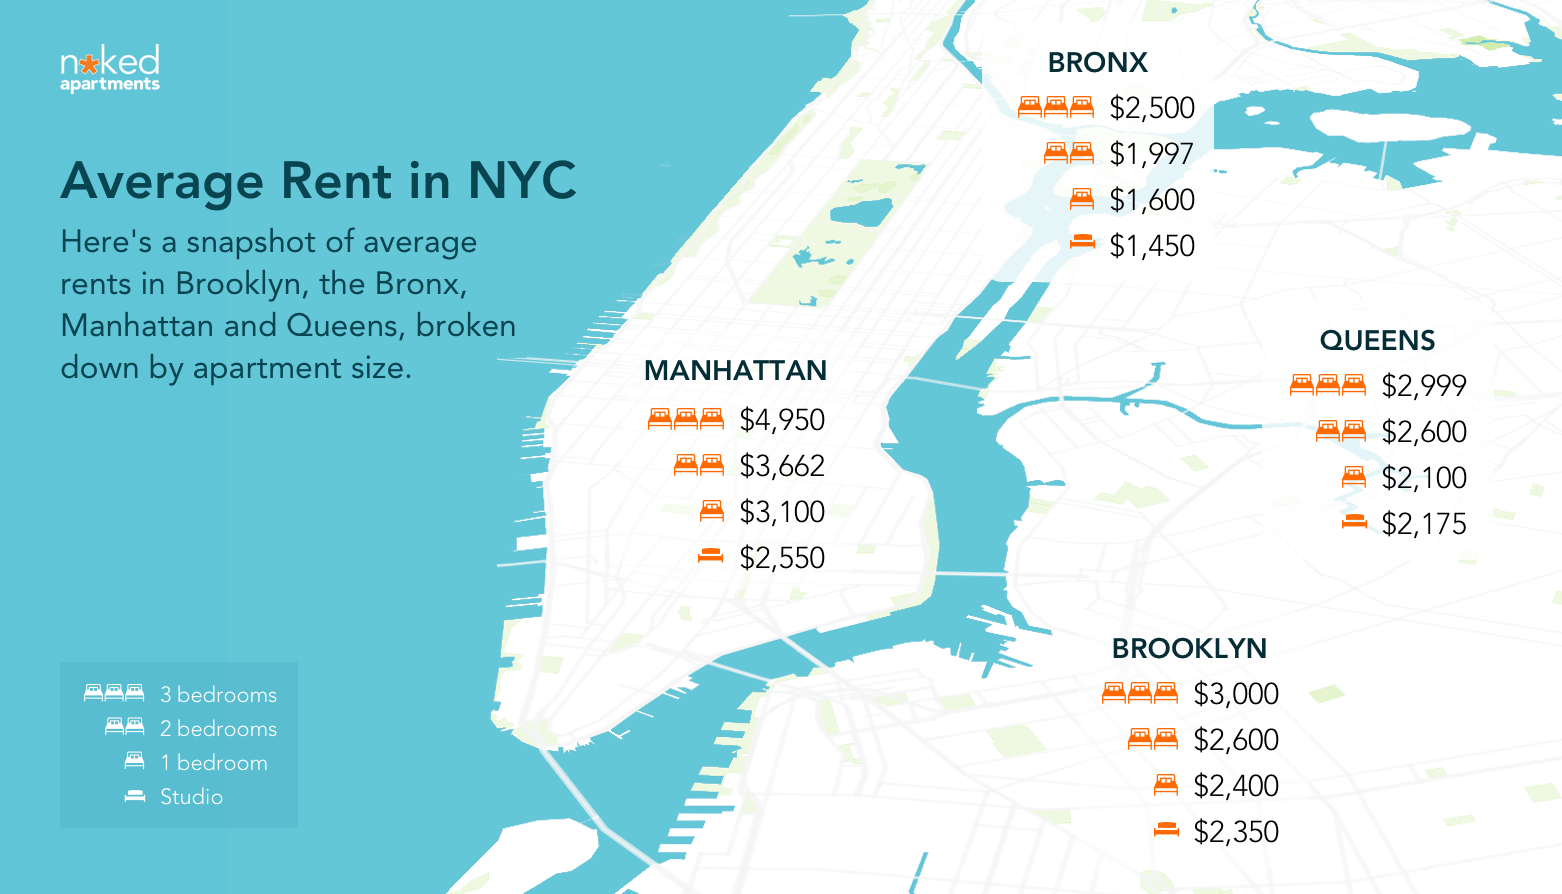 Average Rent In Nyc A Cheat Sheet For Renters On Budget Mariela Quintana Dec 12 2017 Infographics Rental Prices